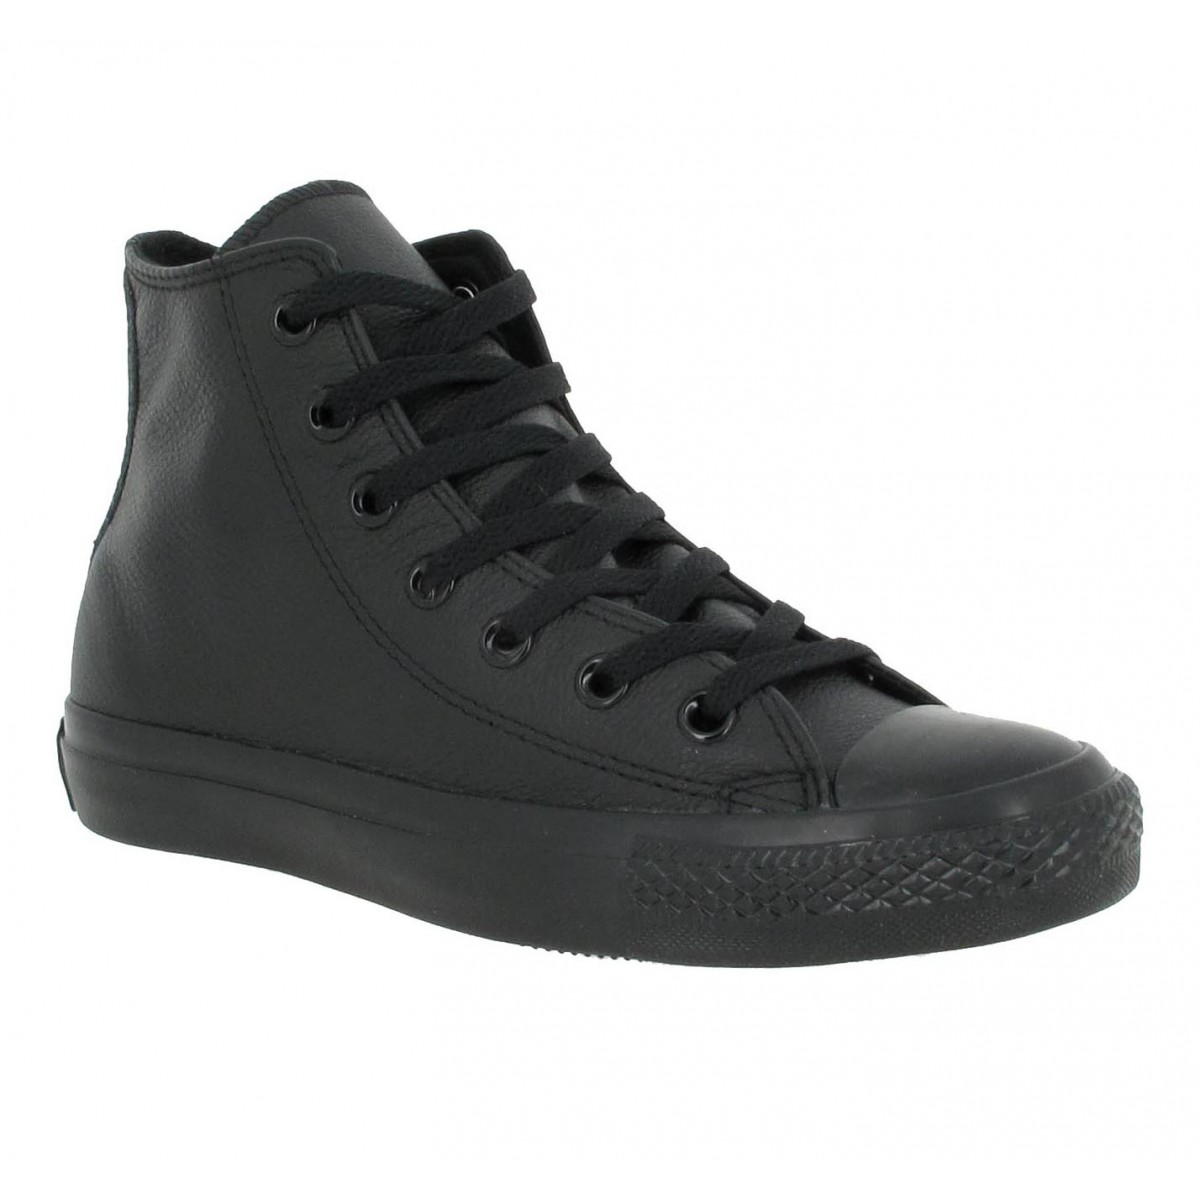 Baskets CONVERSE Chuck Taylor All Star Hi cuir Femme Black